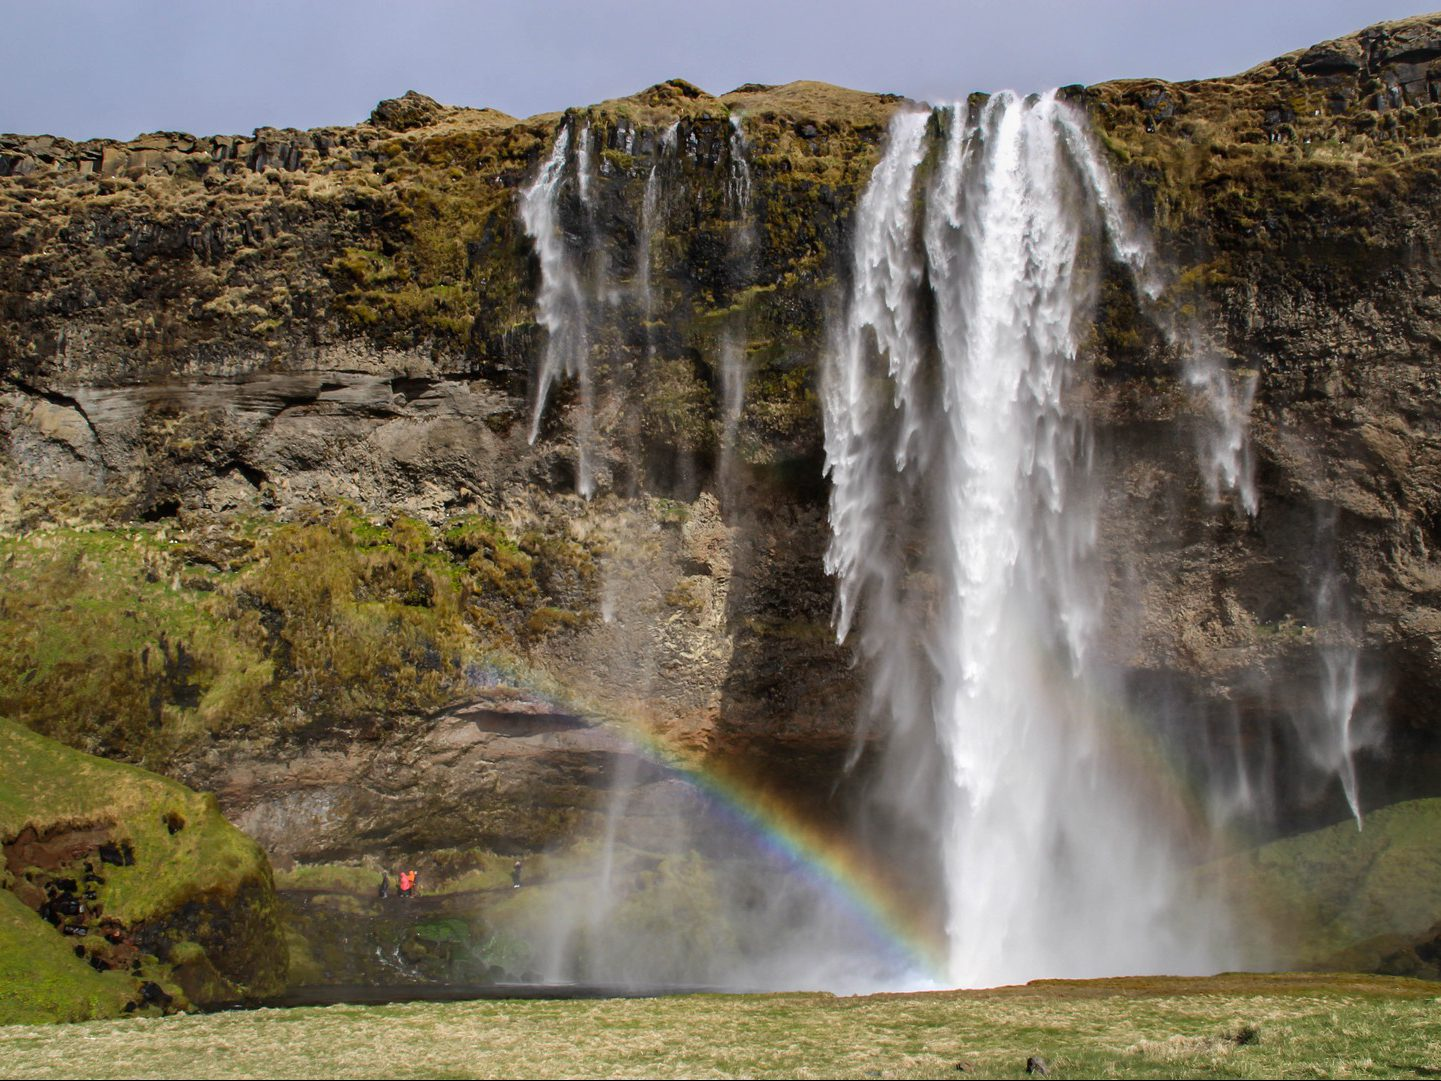 Rainbow arises at Seljalandsfoss waterfall Iceland